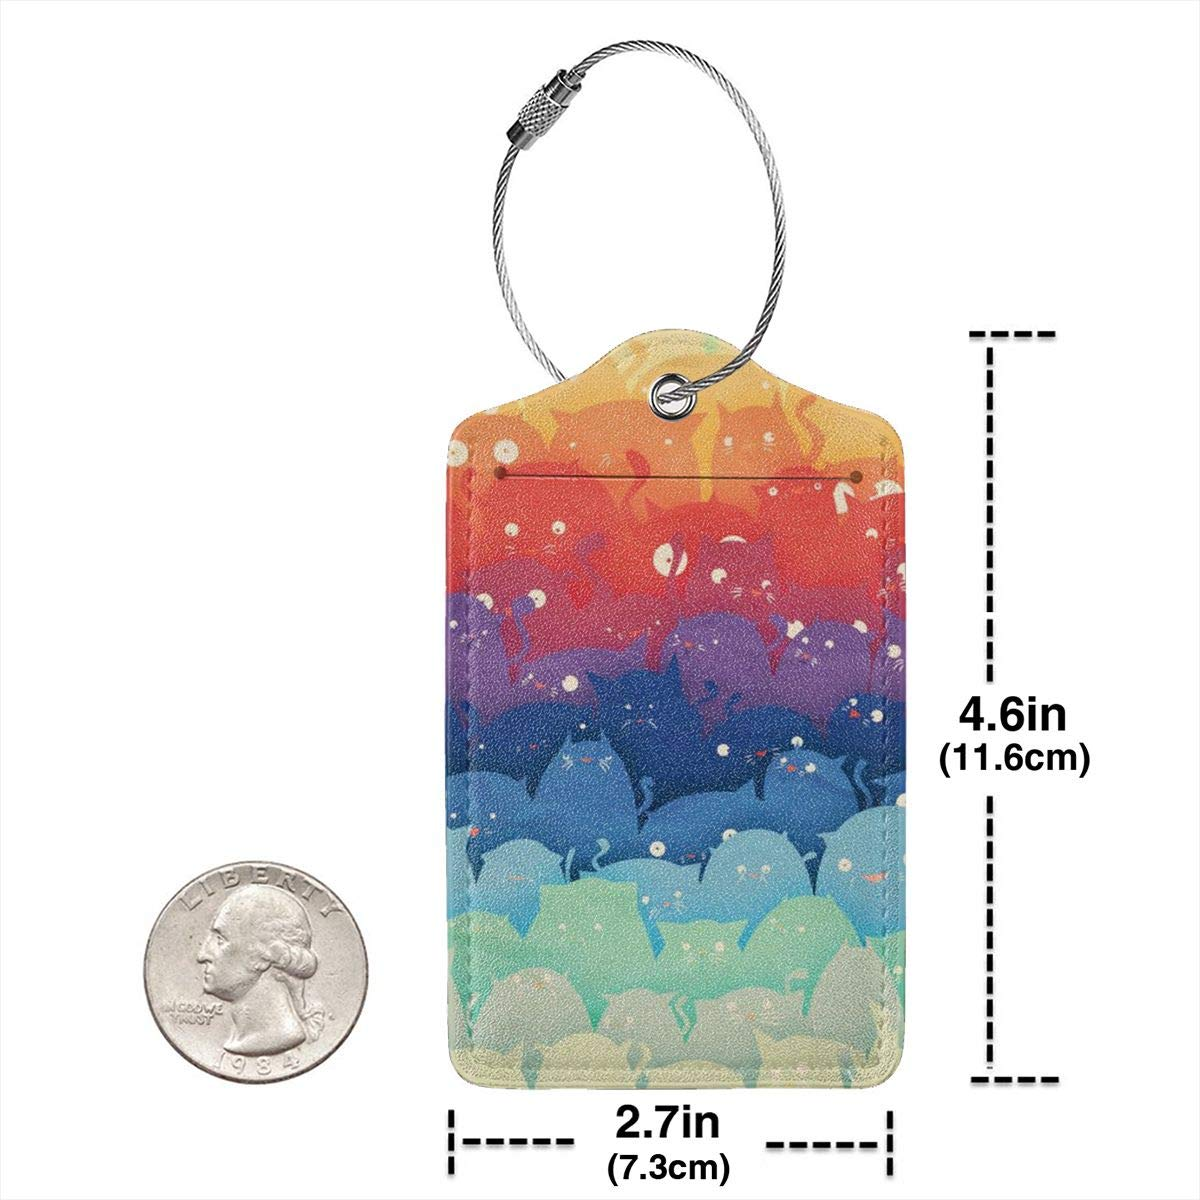 Leather Luggage Tags Full Privacy Cover and Stainless Steel Loop 1 2 4 Pcs Set Key Tags for Backpacks Travel Bags Gift Rainbow Cats 2.7 x 4.6 Blank Tag